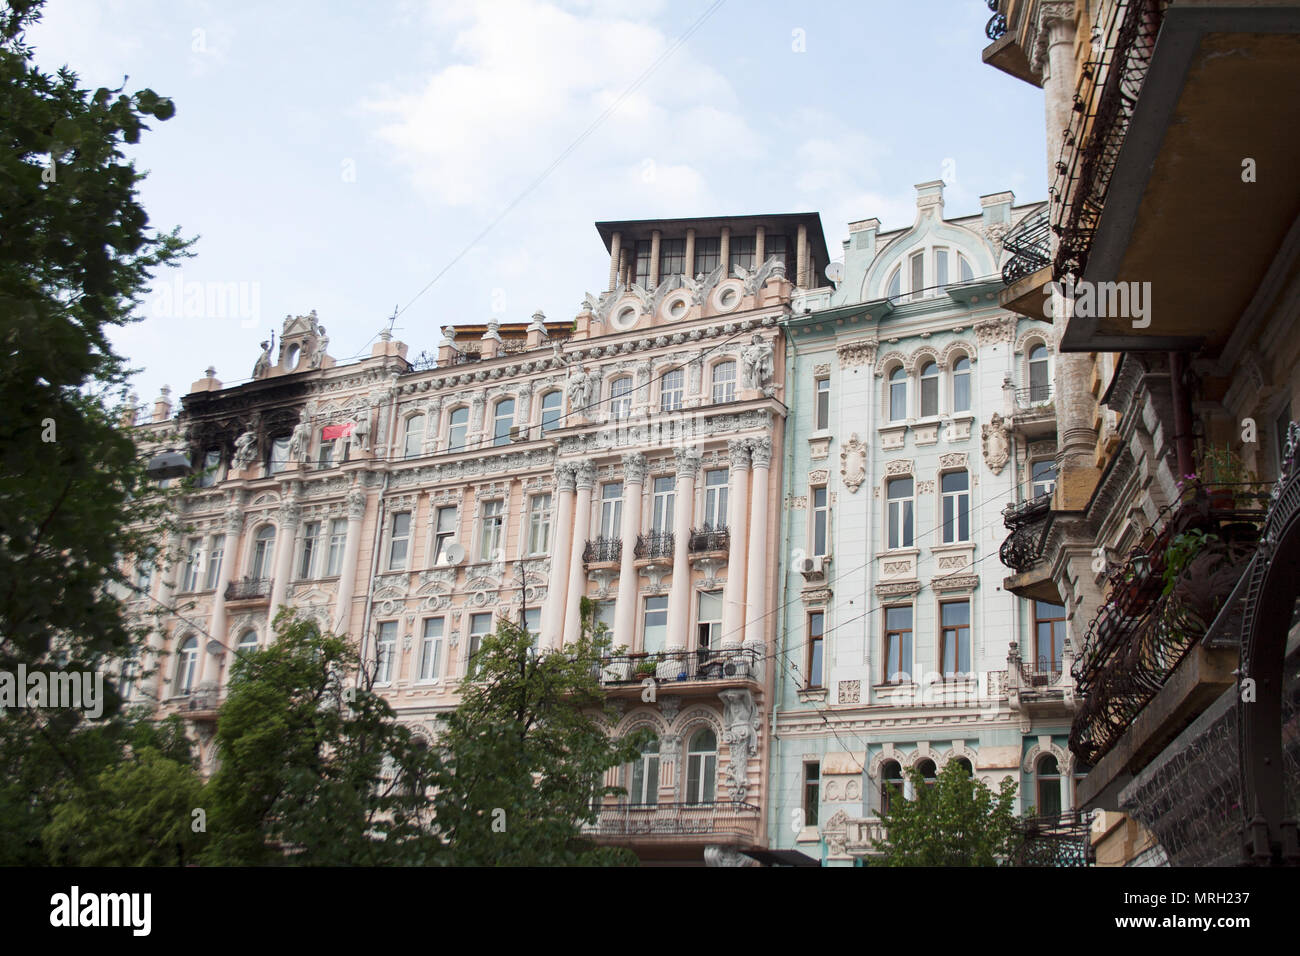 Old architecture buildings facades with stucco, sculptures and balconies - Stock Image